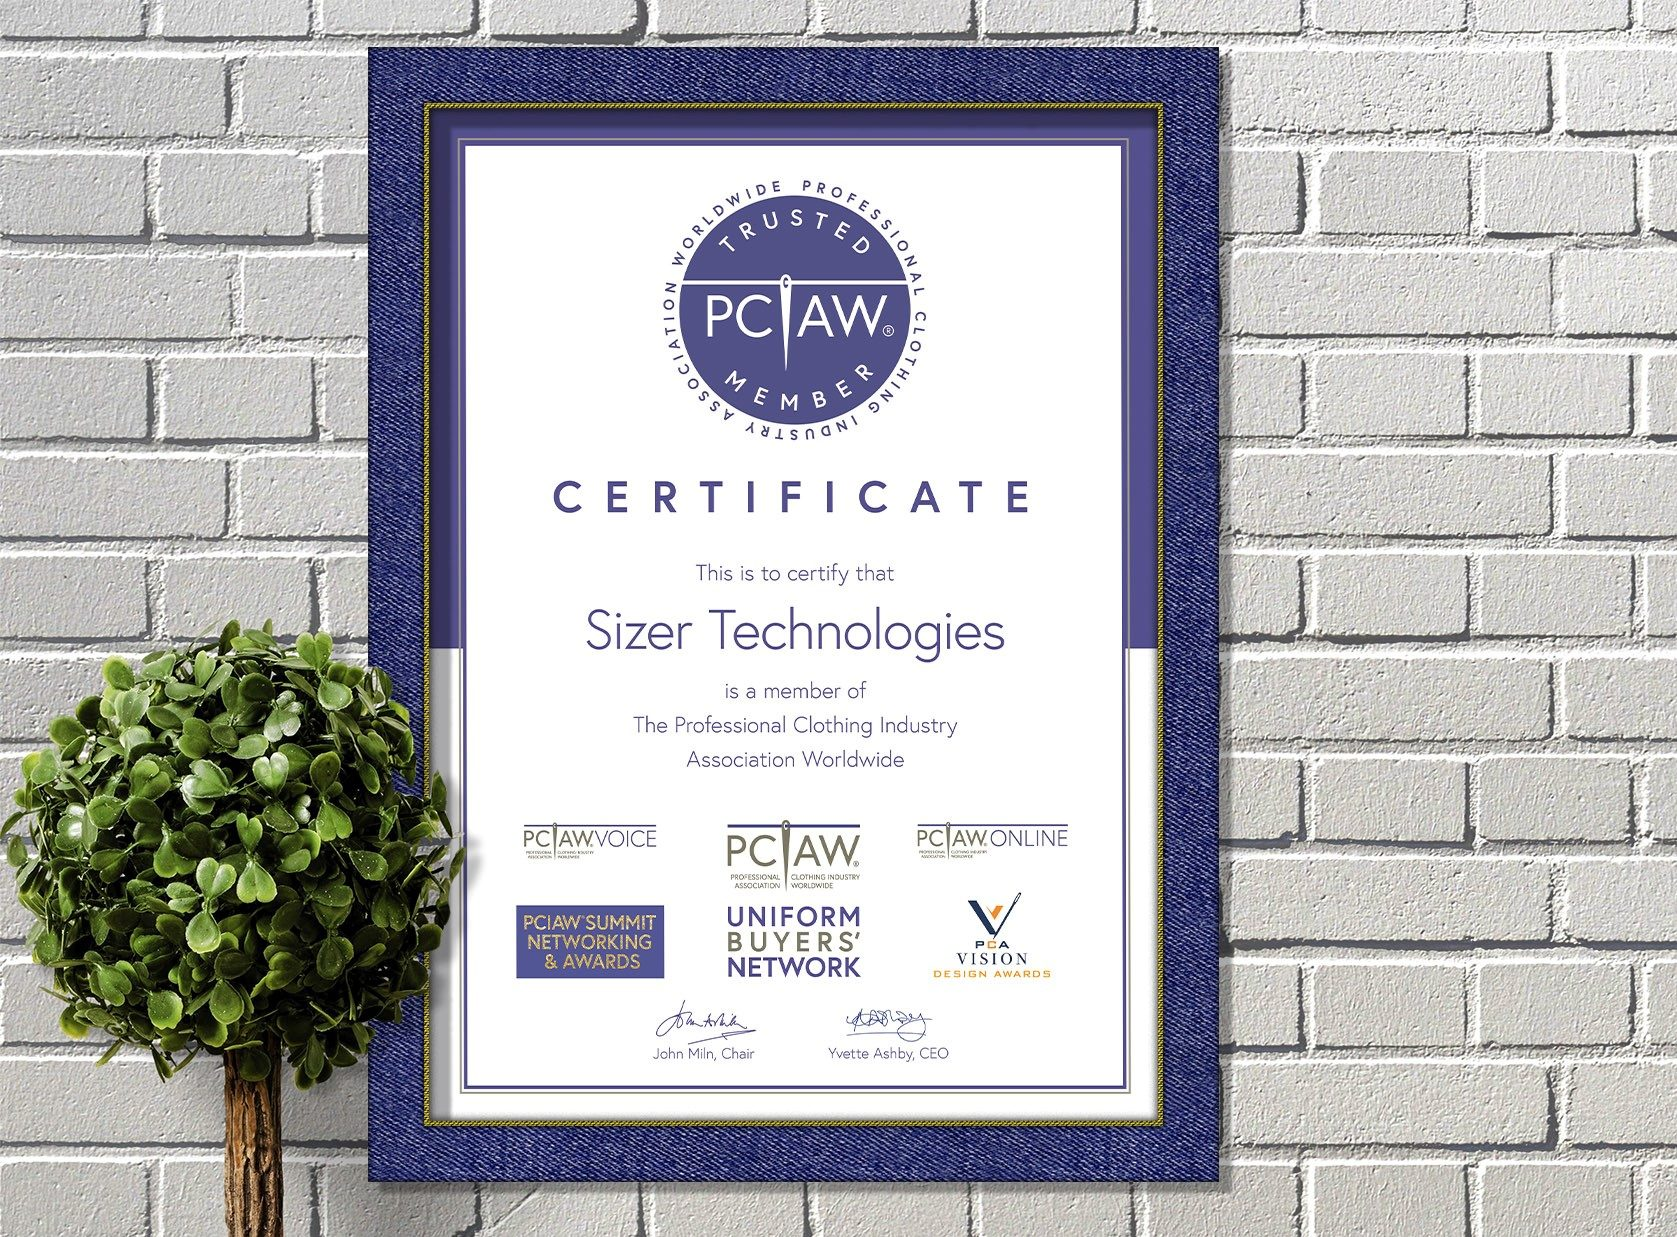 The PCIAW® is pleased to include Sizer Technologies as a PCIAW® Trusted Member.